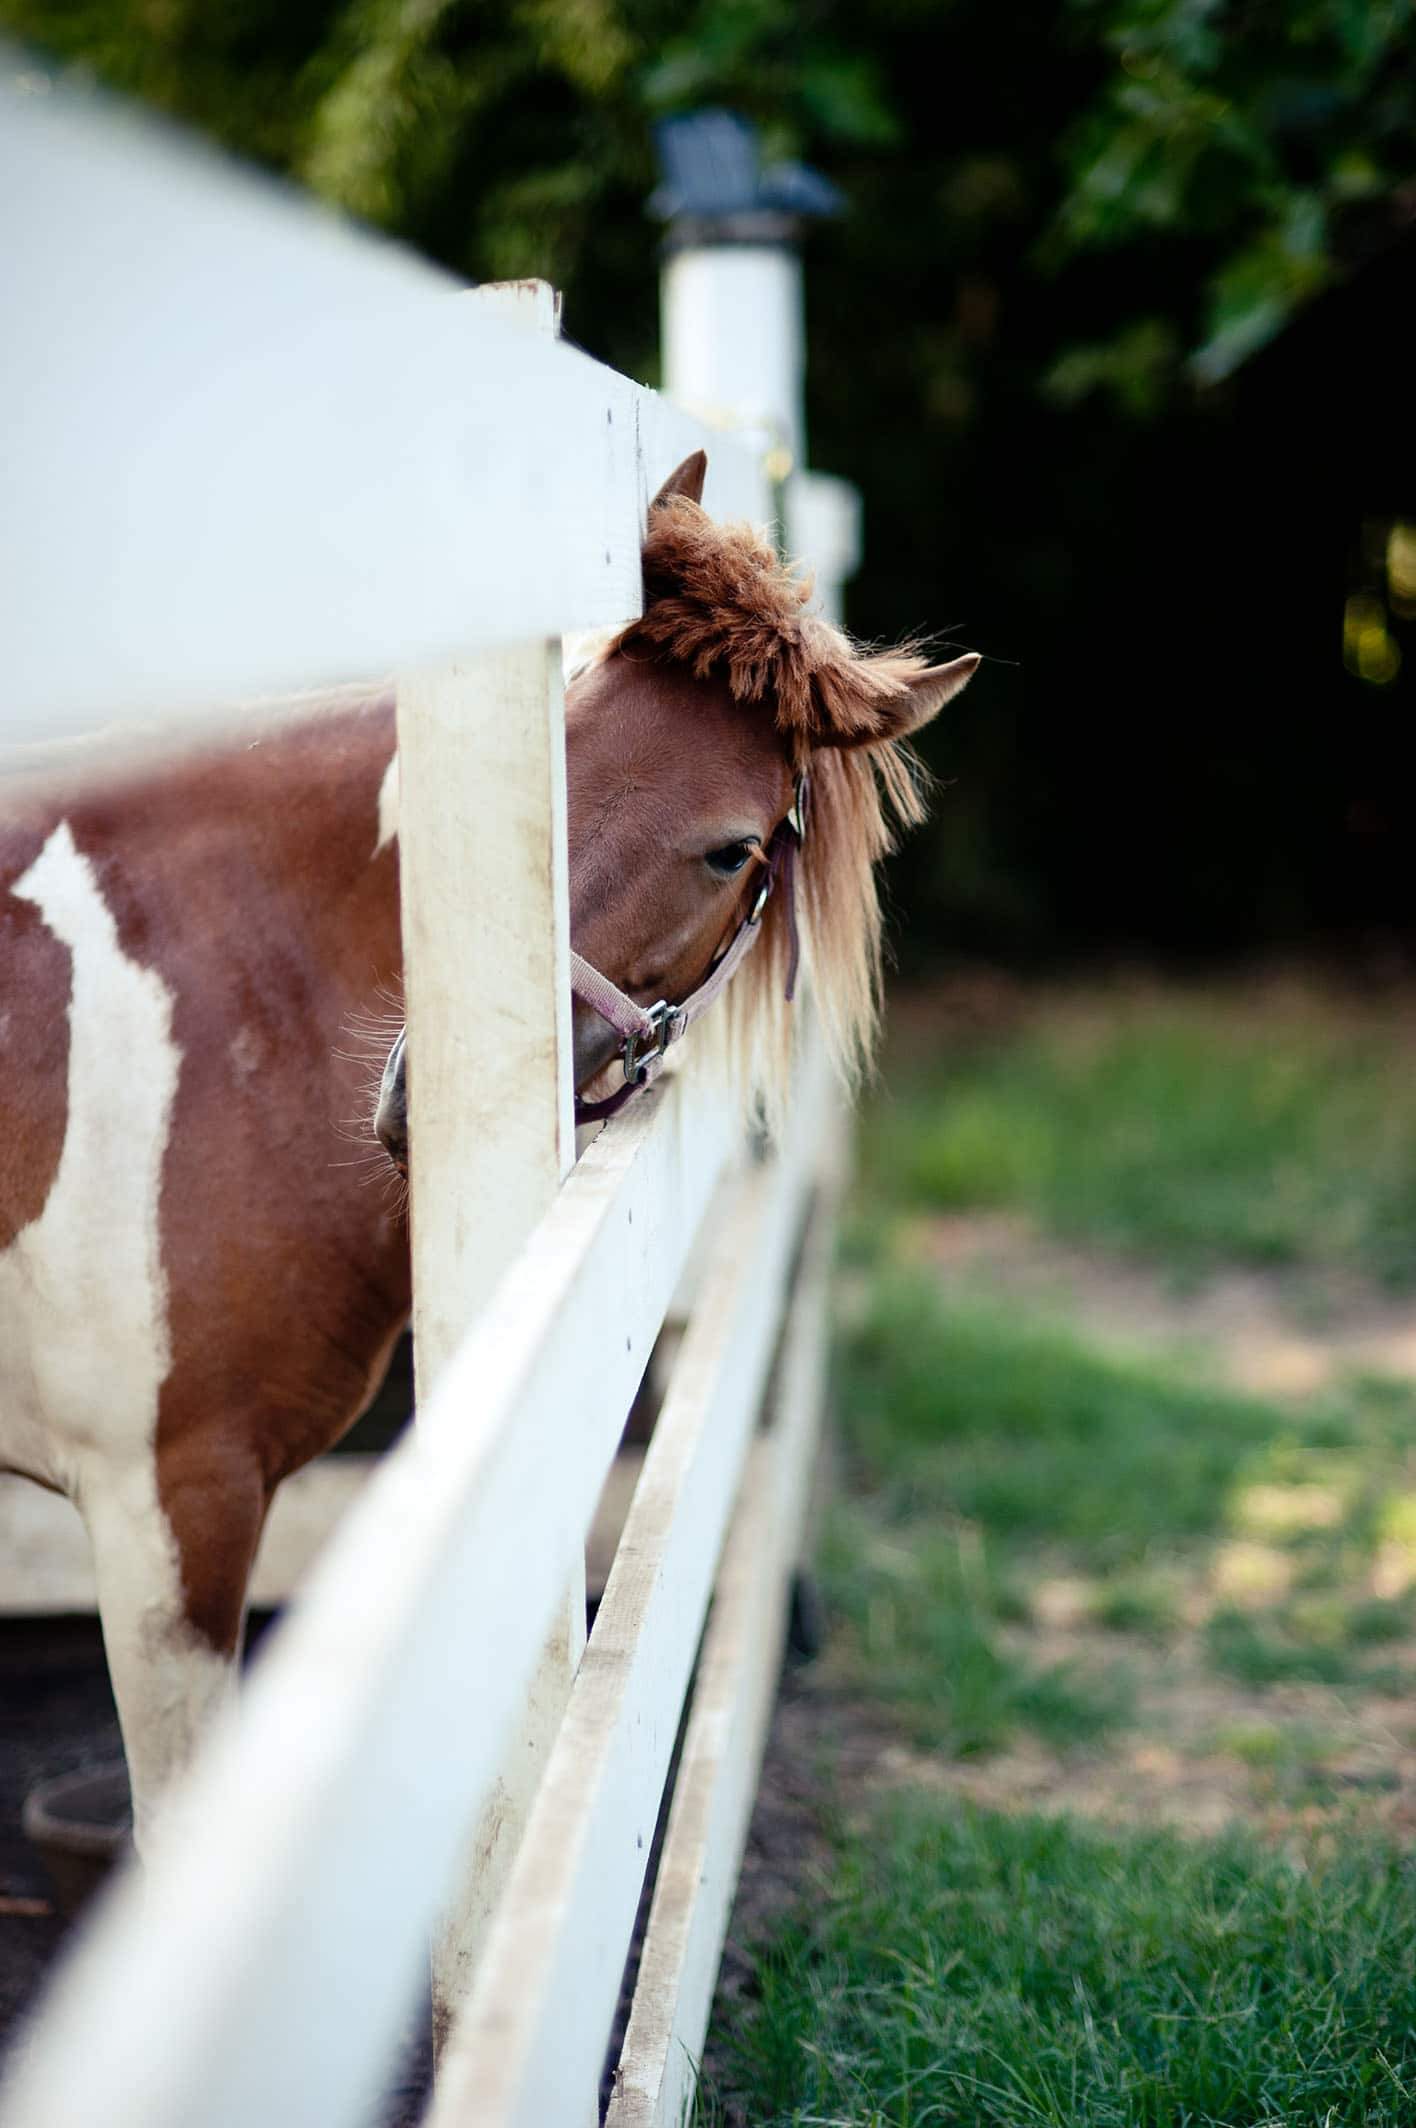 Peeking Pony